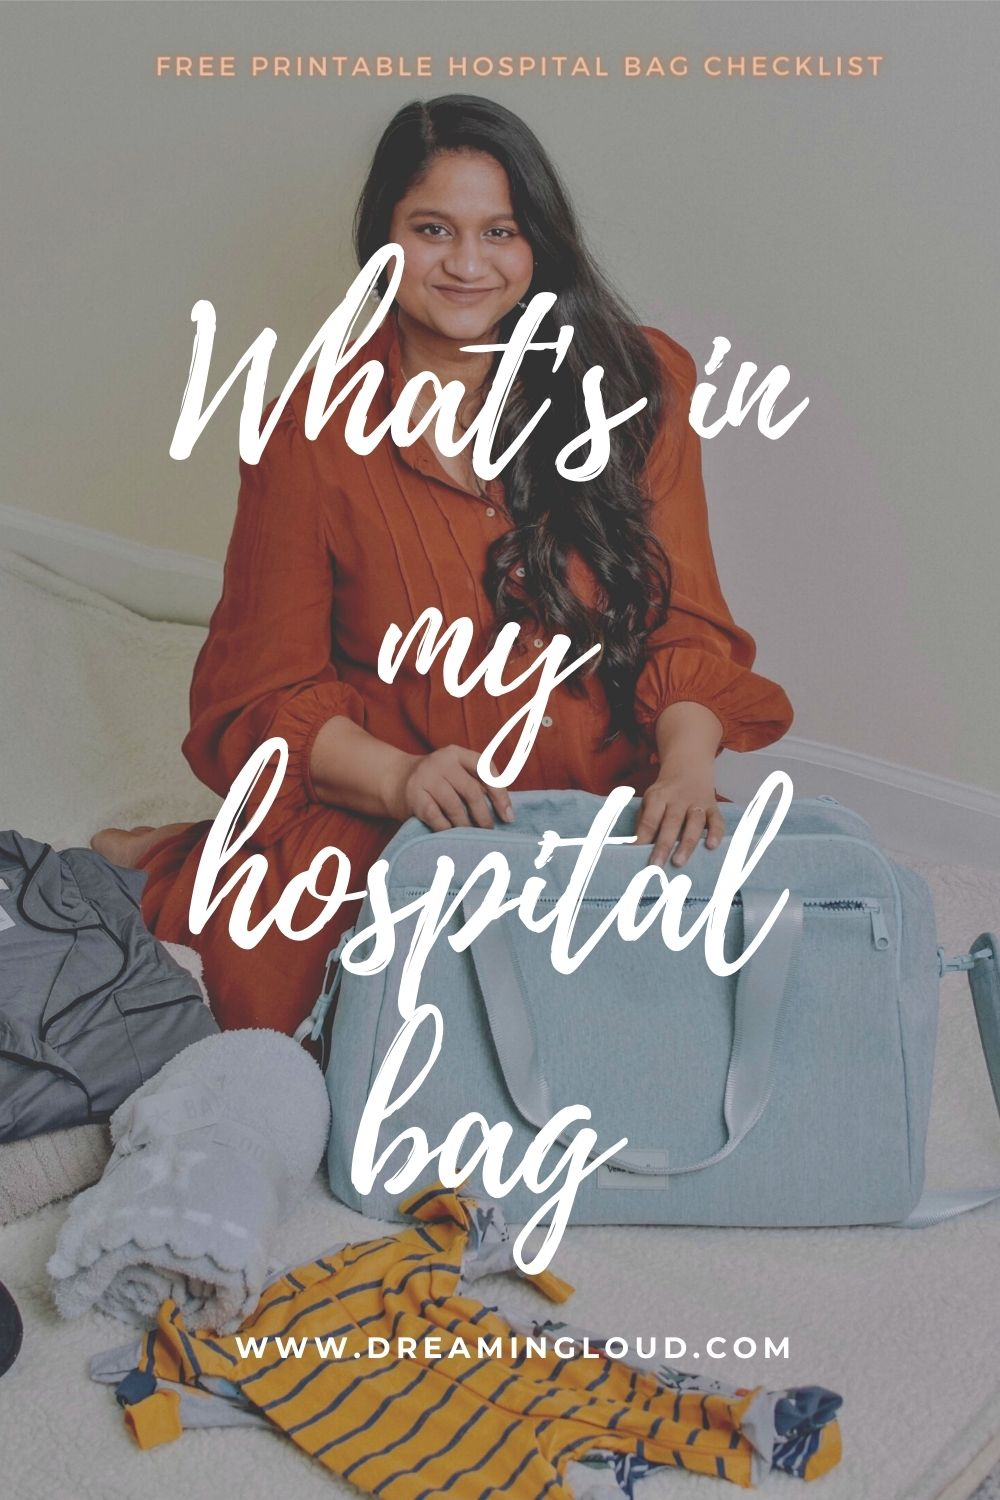 What's In My Hospital Bag (+ free printable Hospital bag checklist!)1 | Hospital Bag by popular Maryland motherhood blog, Dreaming Loud: Pinterest image of a woman sitting next to her blue hospital bag.